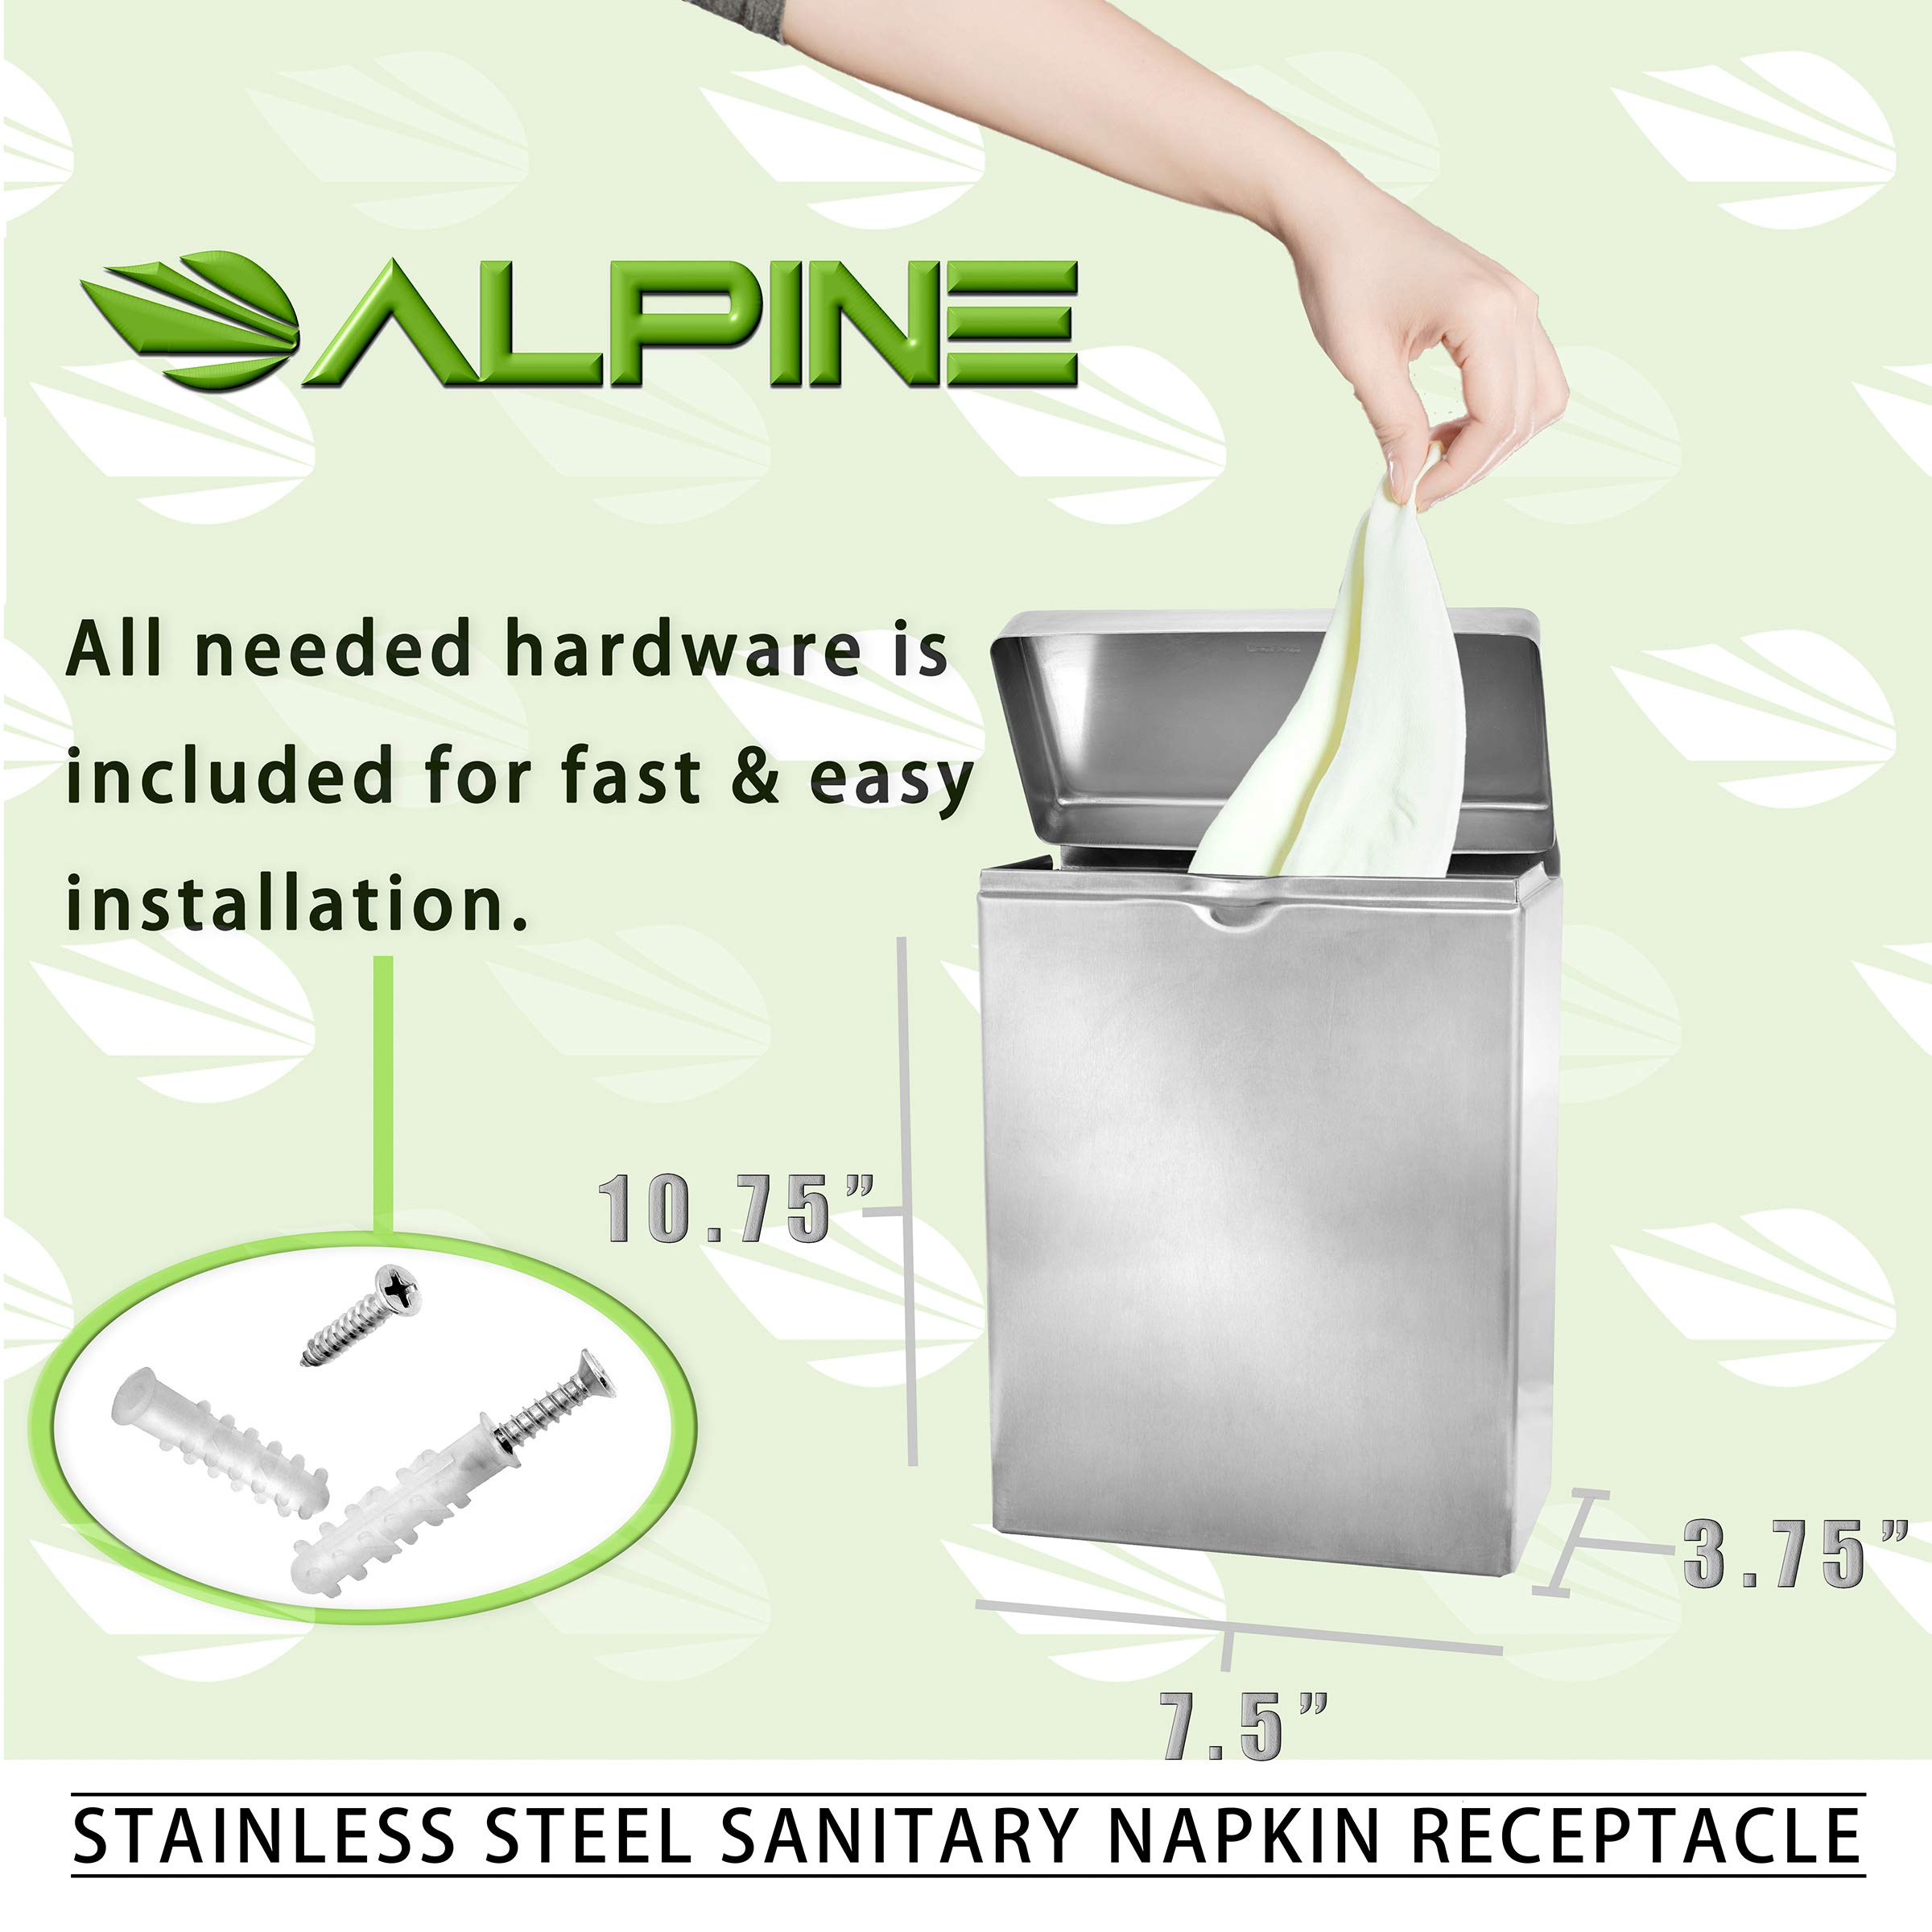 Alpine Industries Sanitary Napkin Receptacle - Easy Install, Wall Mounted Container - Provides Clean & Odor-Free Restroom for Home & Public Restrooms by Alpine Industries (Image #5)